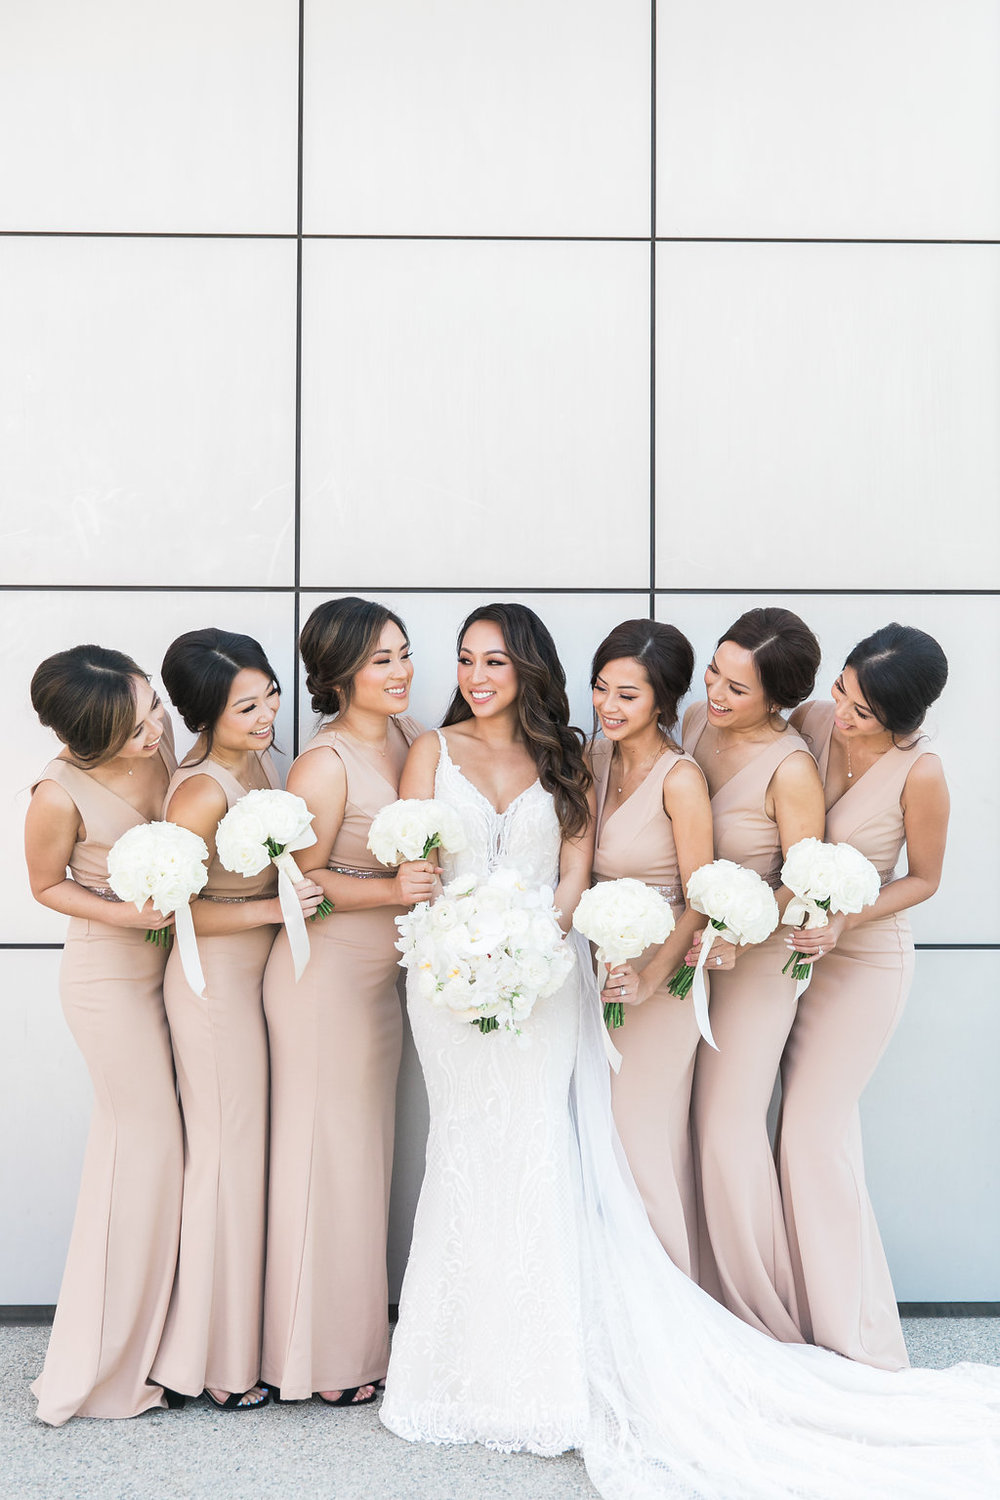 HNP_CuongElaineWedding_April2018-20.jpg